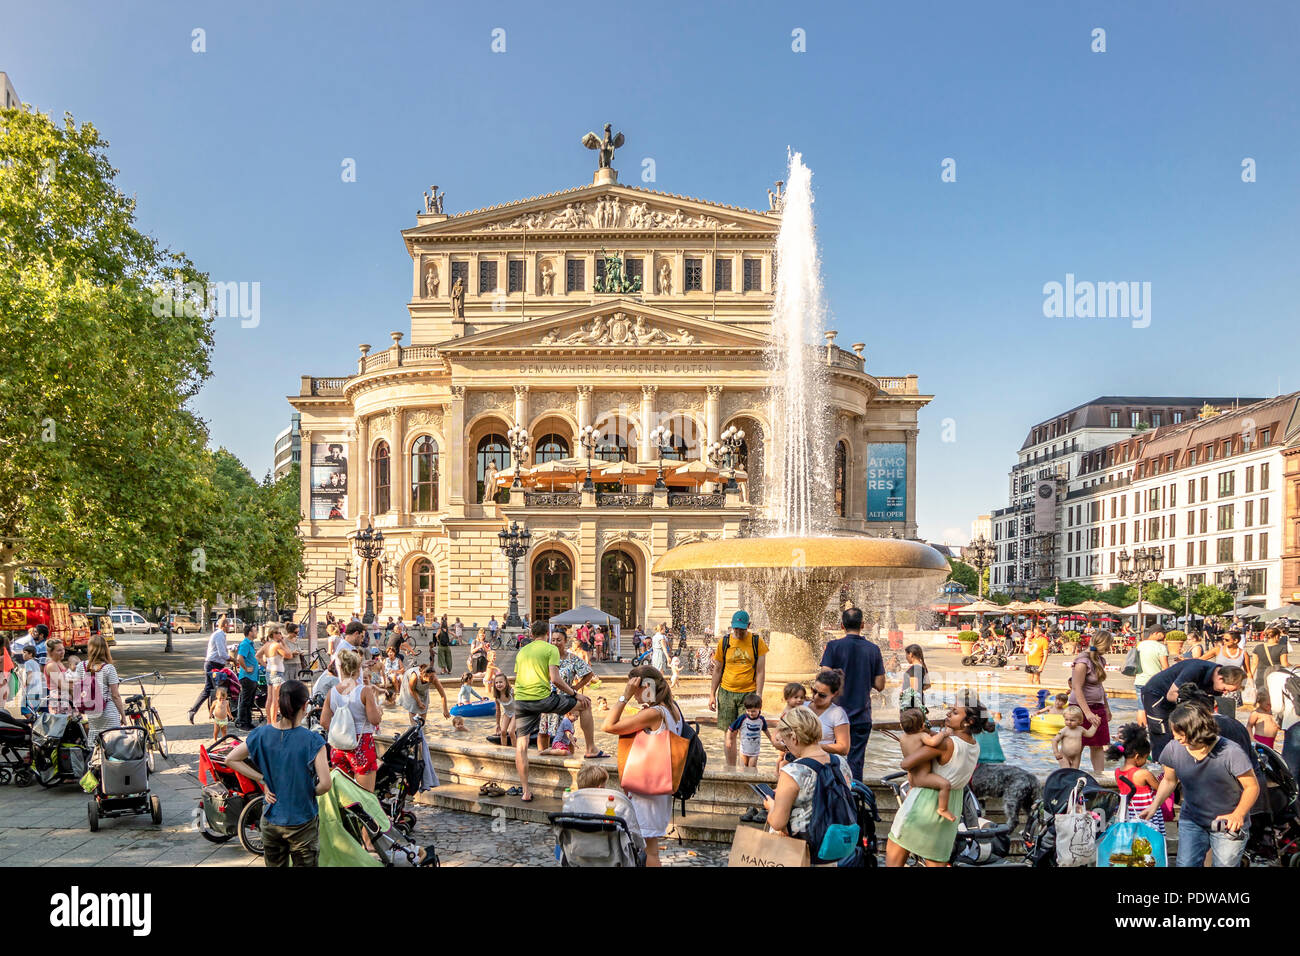 FRANKFURT / GERMANY - AUGUST 02 2018: People searching for refreshment in the water of the fountain at Opernplatz during one of the warmest summer day - Stock Image